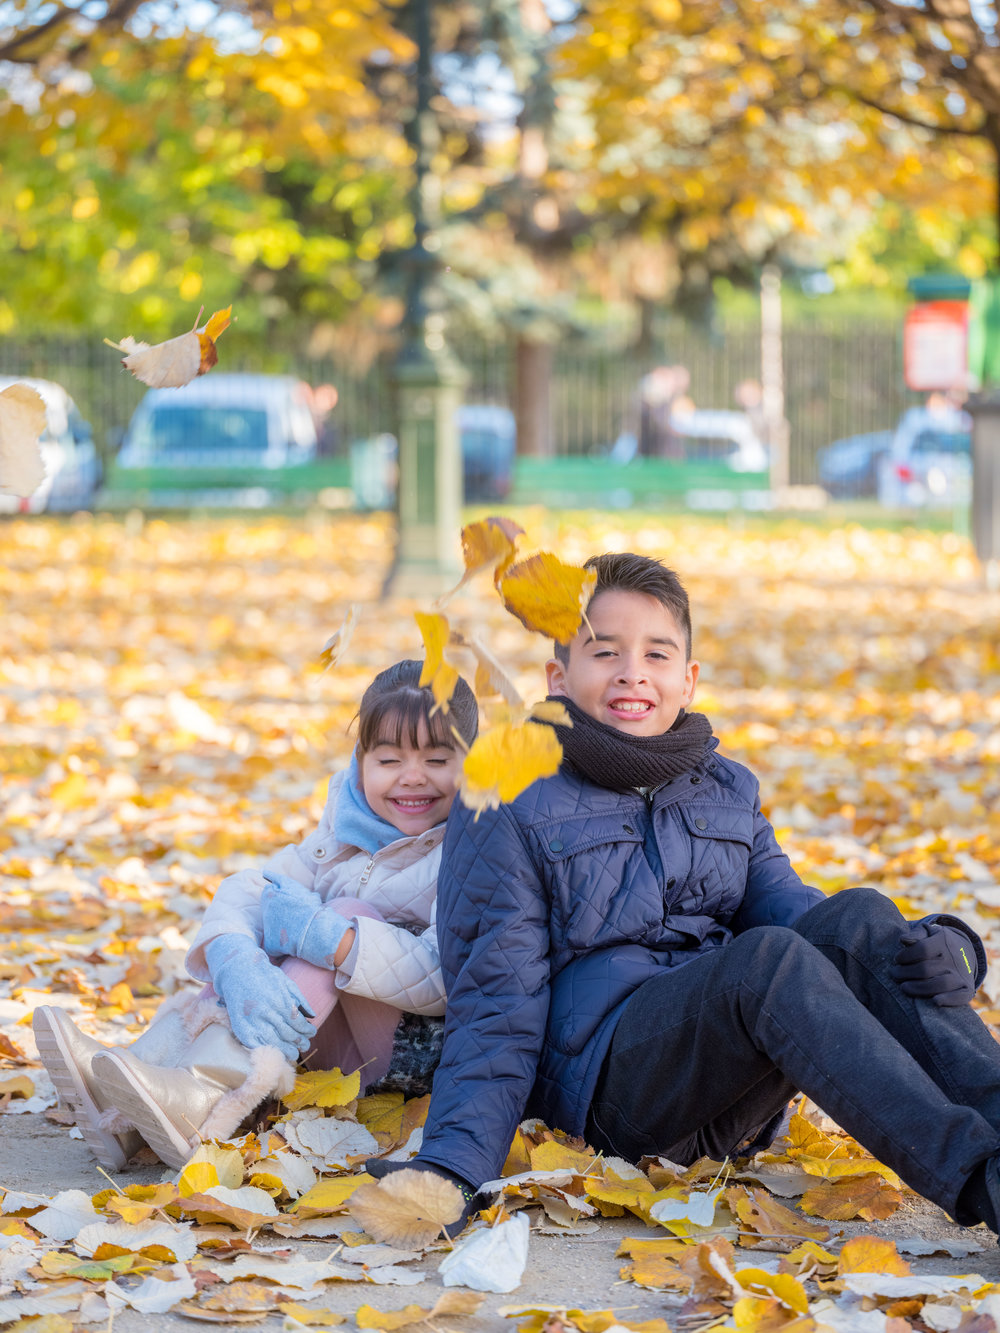 Family time in Paris in autumn, so much amazing color